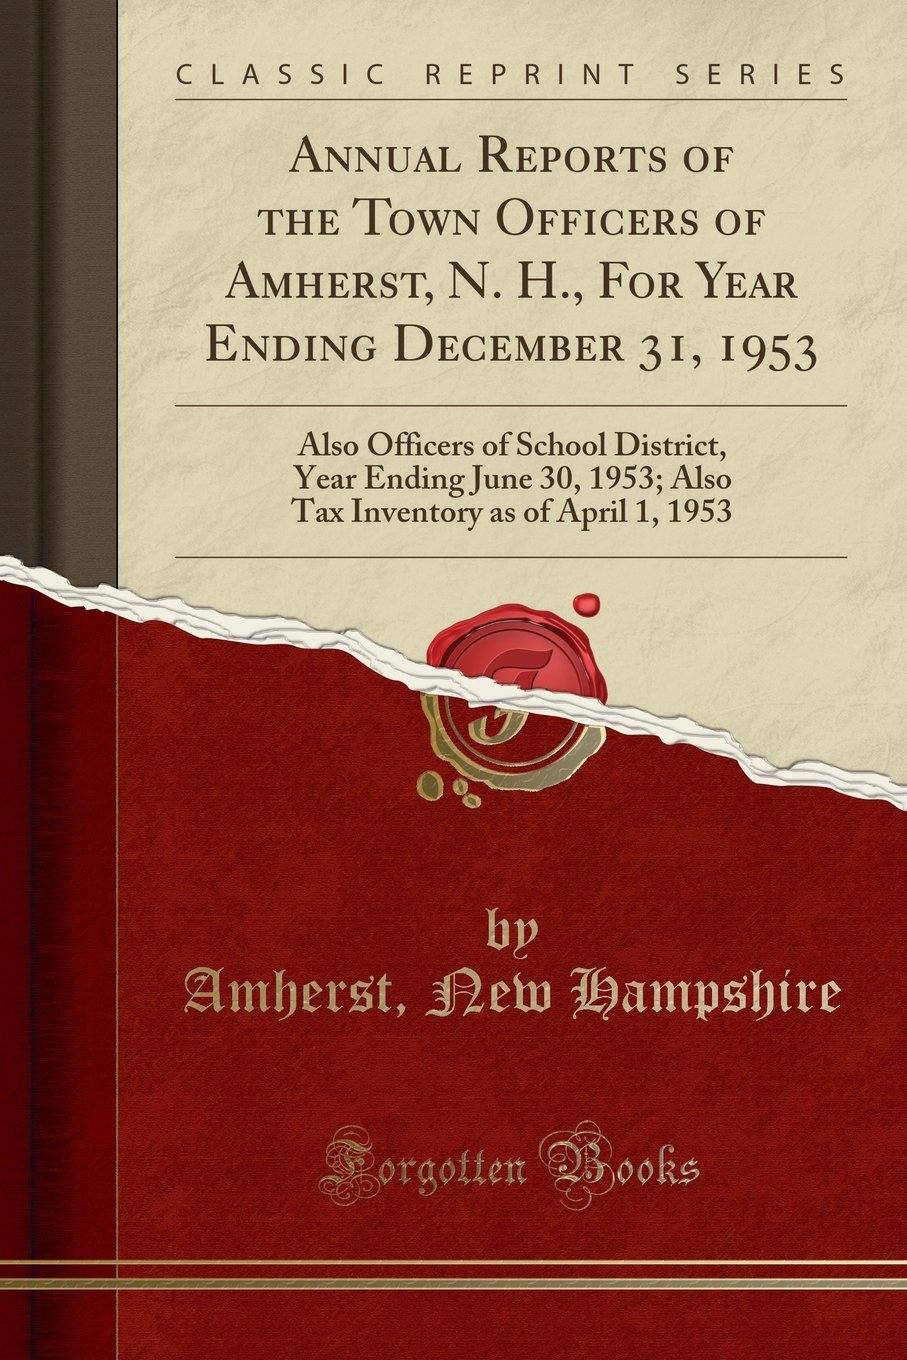 Annual Reports of the Town Officers of Amherst, N. H., For Year Ending December 31, 1953: Also Officers of School District, Year Ending June 30, 1953; ... as of April 1, 1953 (Classic Reprint) pdf